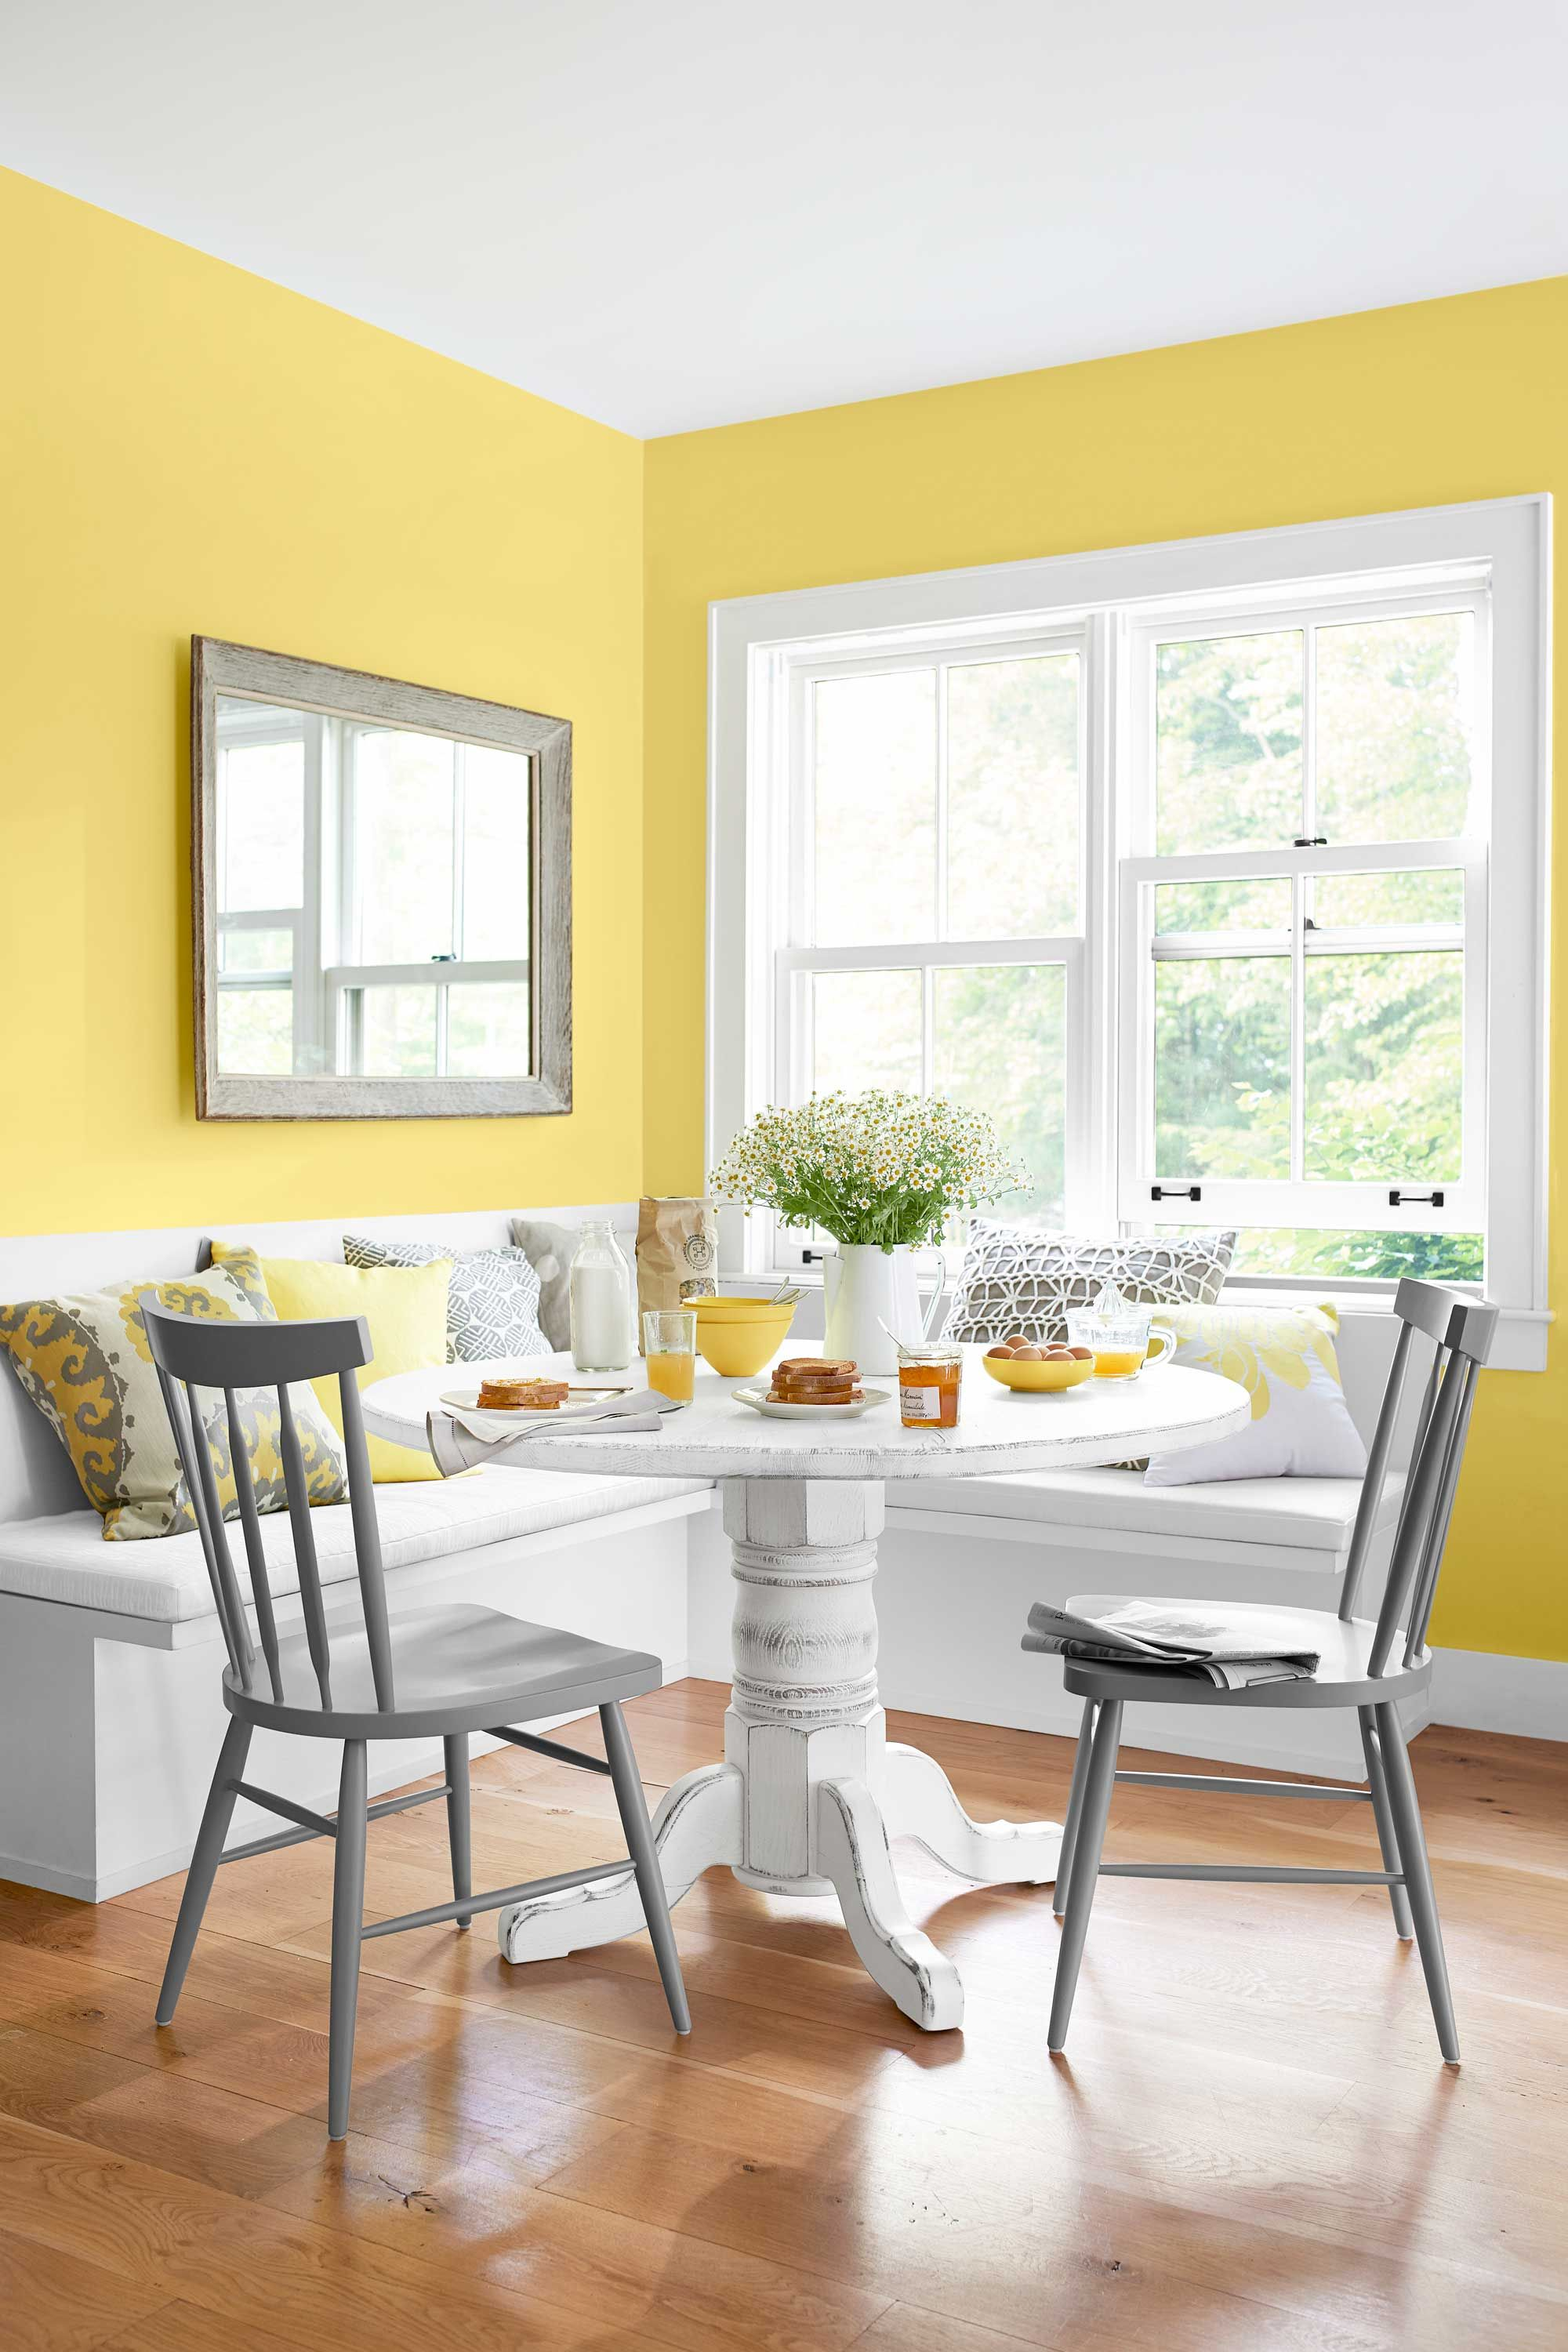 23 Warm Paint Colors for a Cozier Home | Chrome, Room and Kitchens